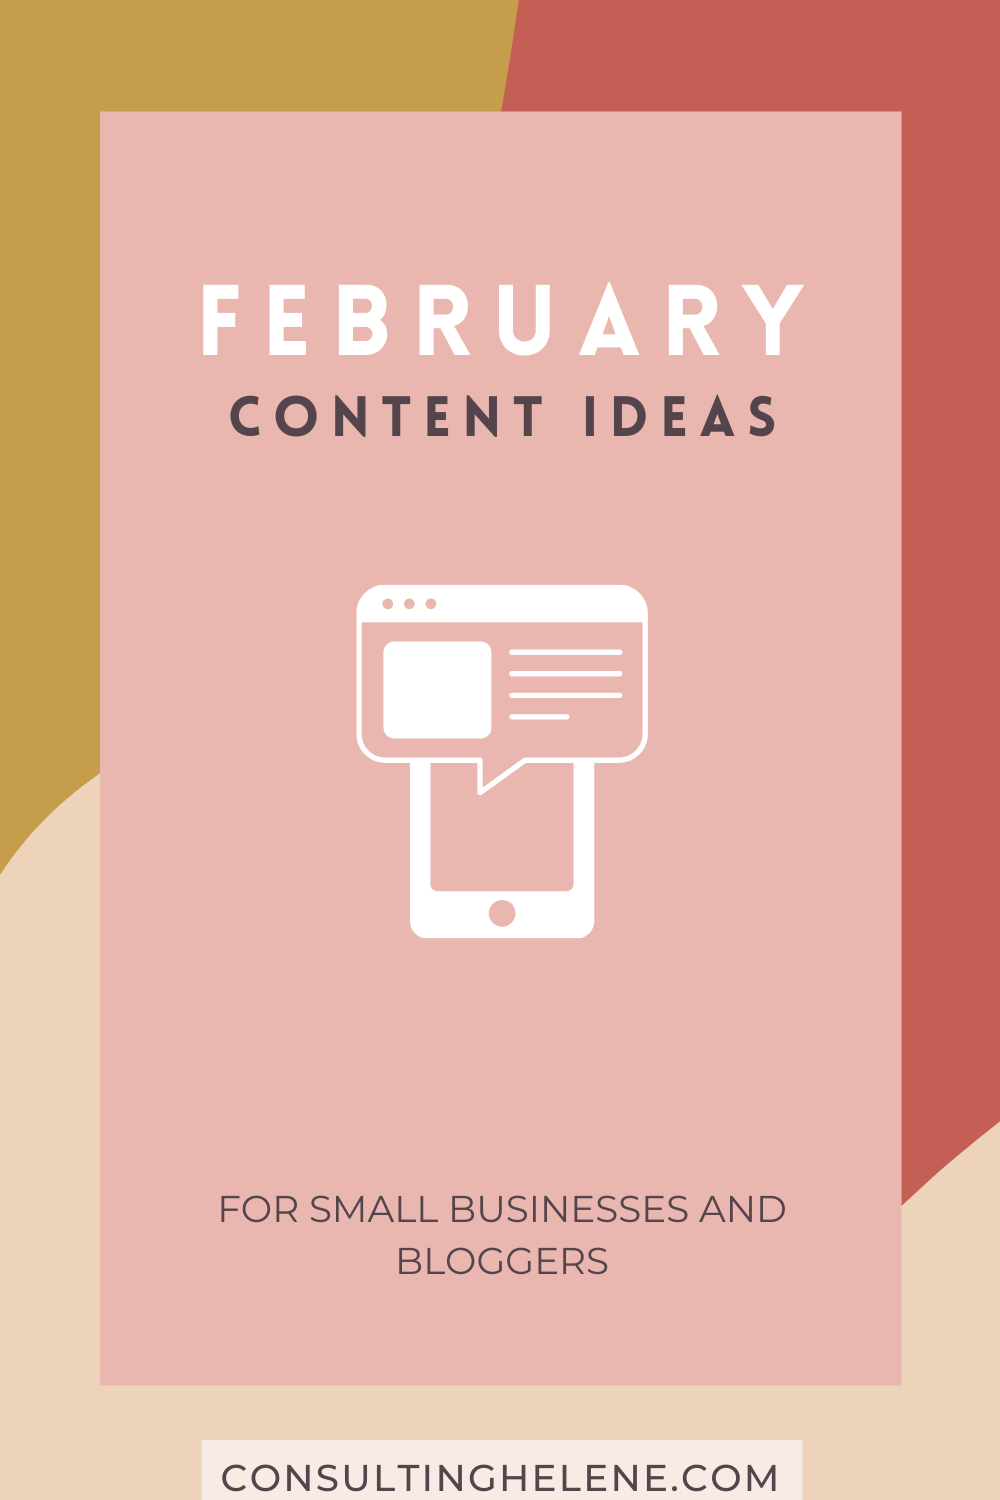 Content Marketing Ideas for February